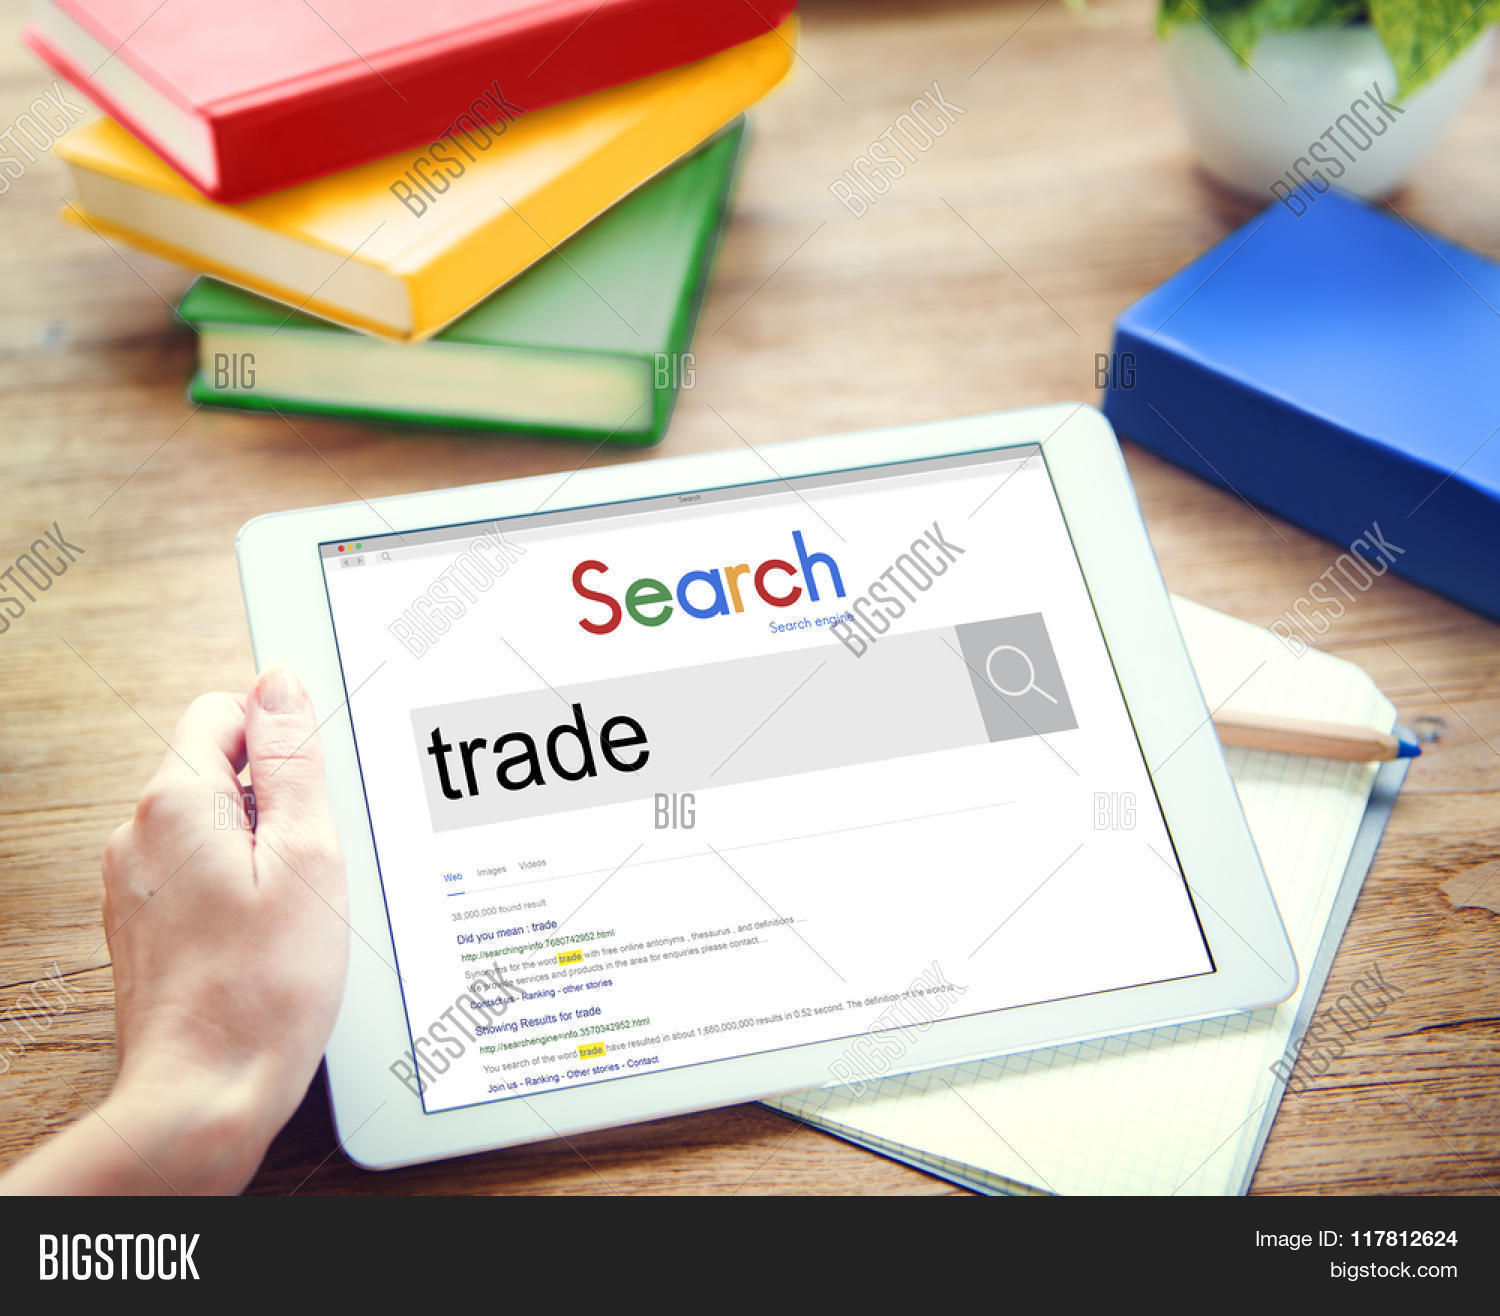 Trade Exchange Import Export Image & Photo (HD) | Bigstock